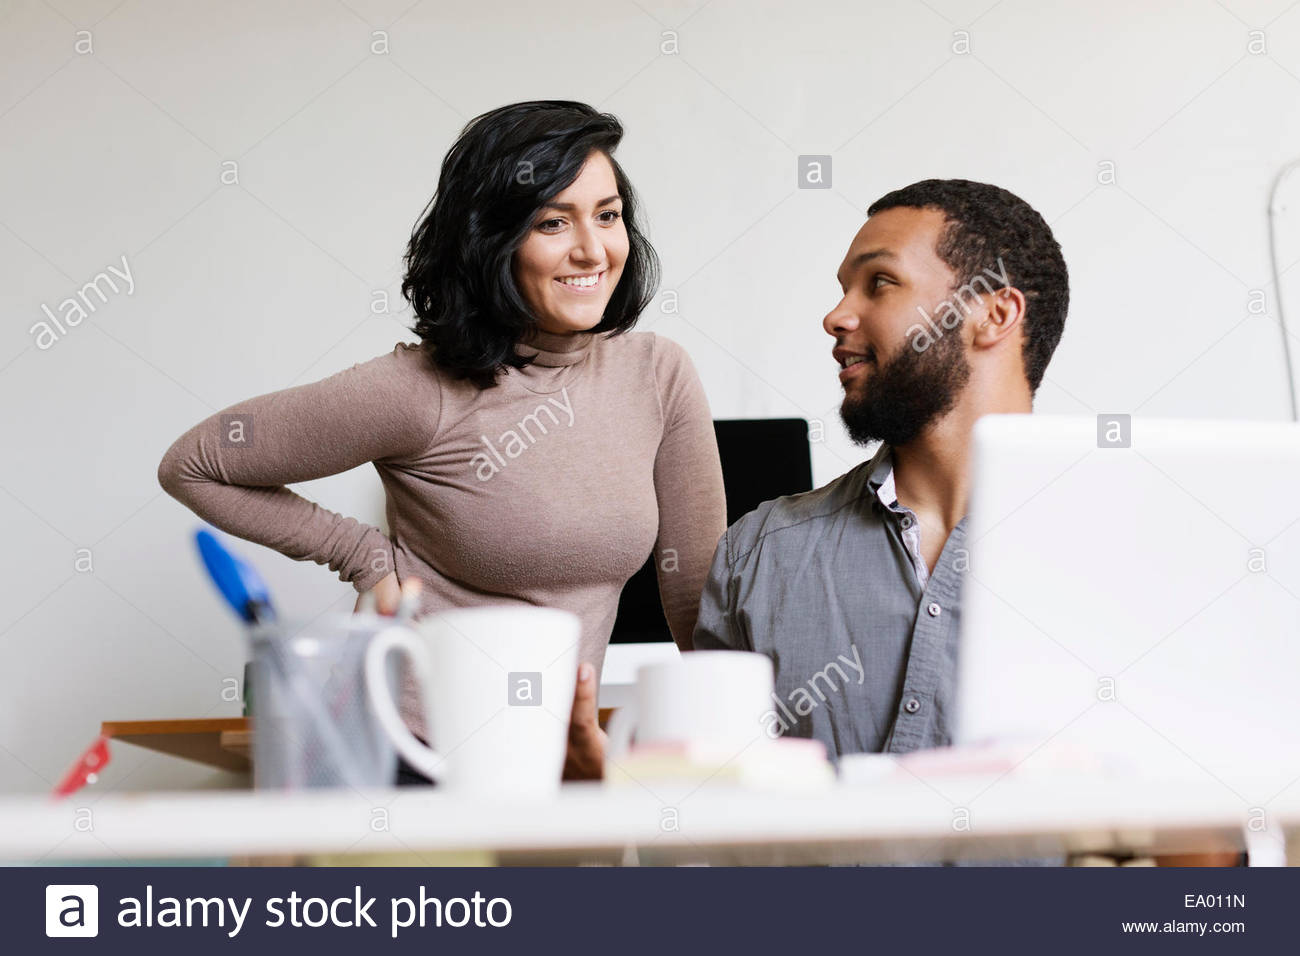 Man and woman in Small Business, Start-up - Stock Image